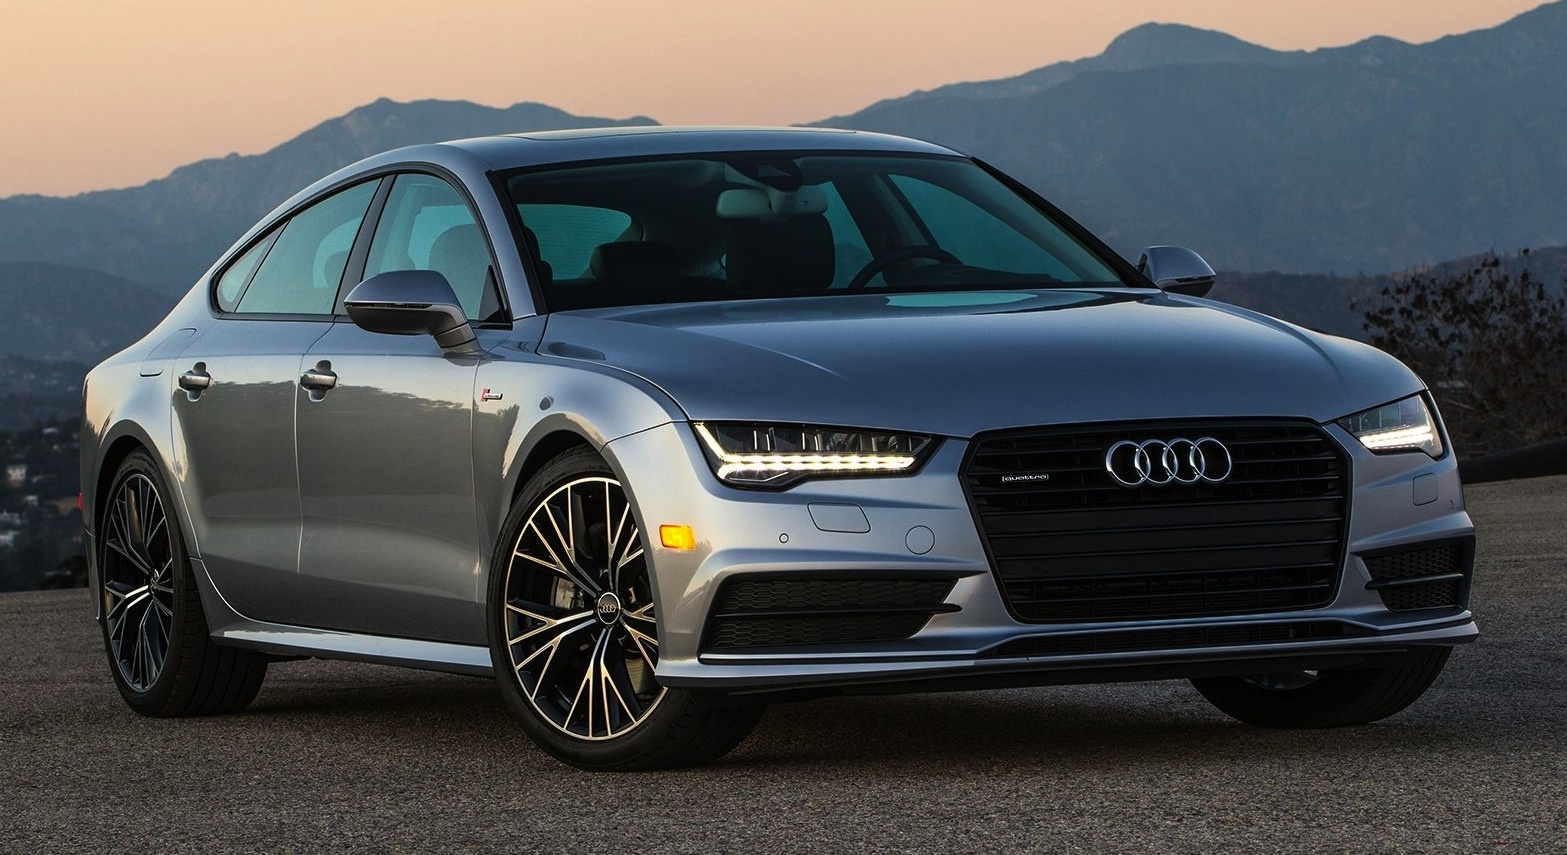 2014 Audi A7 Prices Reviews and Pictures  US News